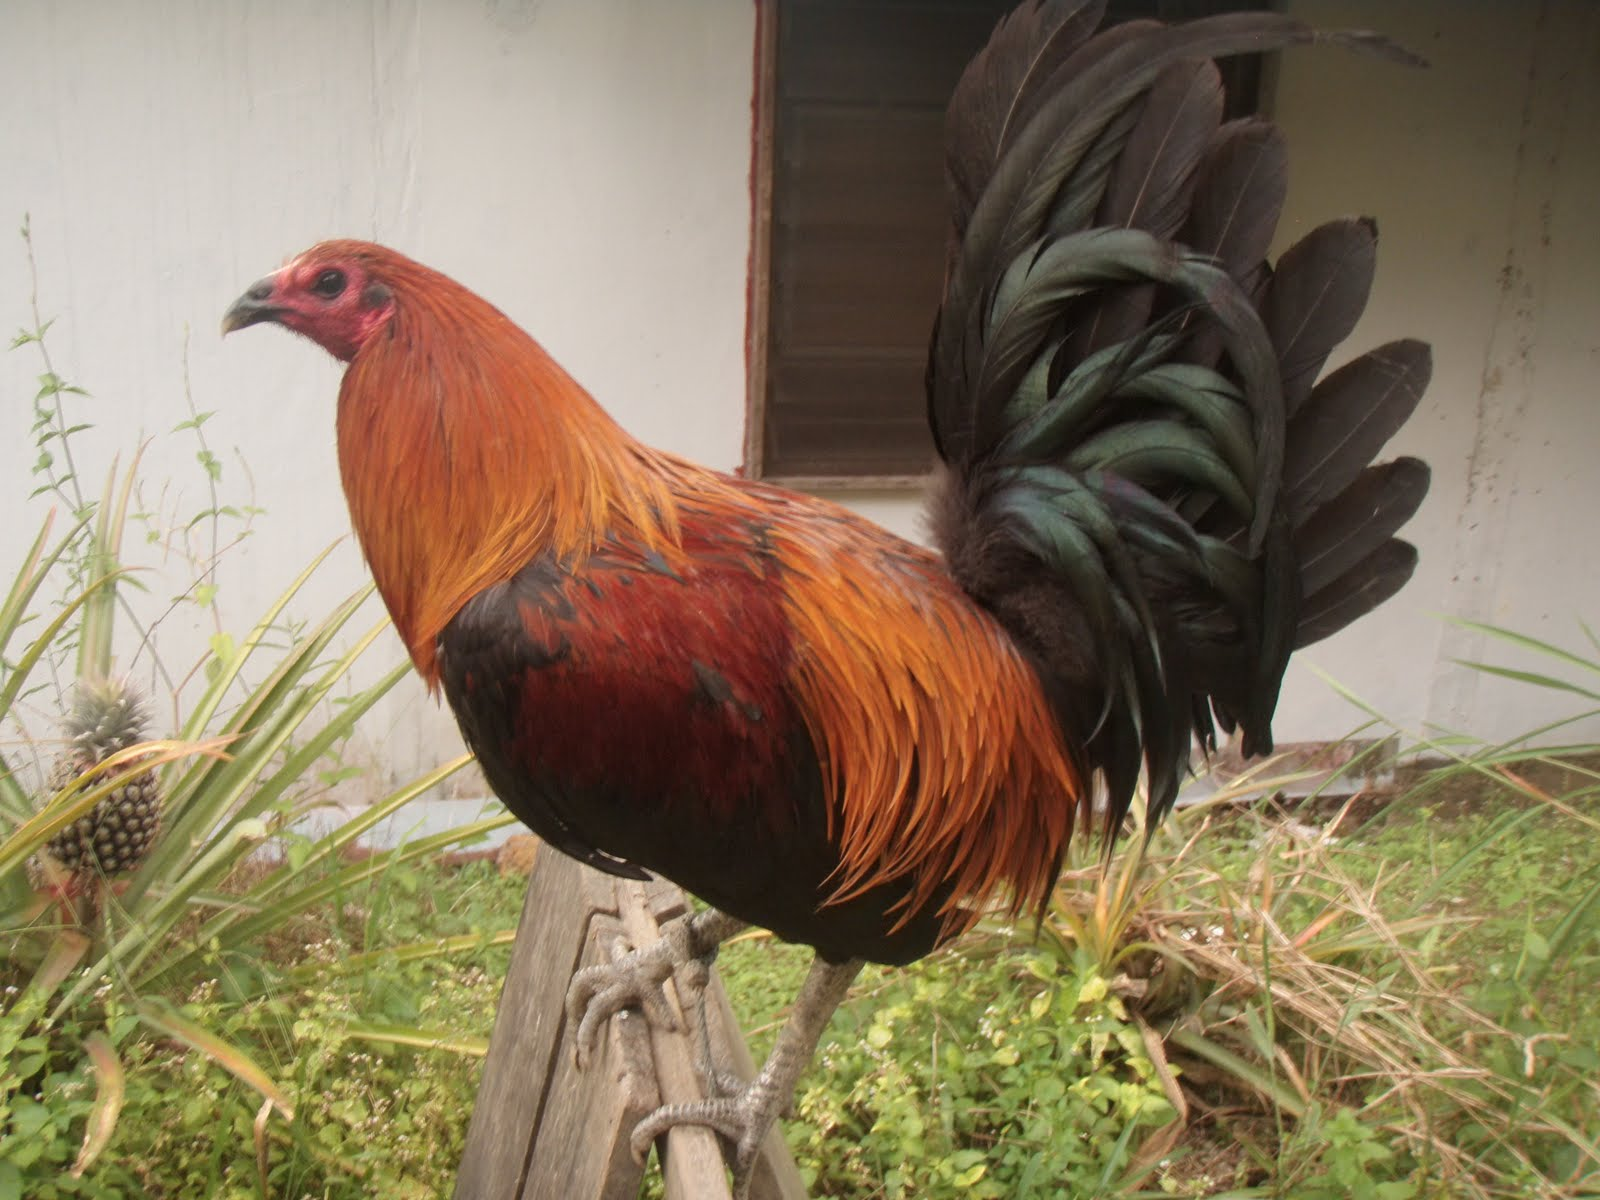 Brown Red Gamefowl http://manoksabong-mark.blogspot.com/2011/08/enkechong-dark-red-mark.html